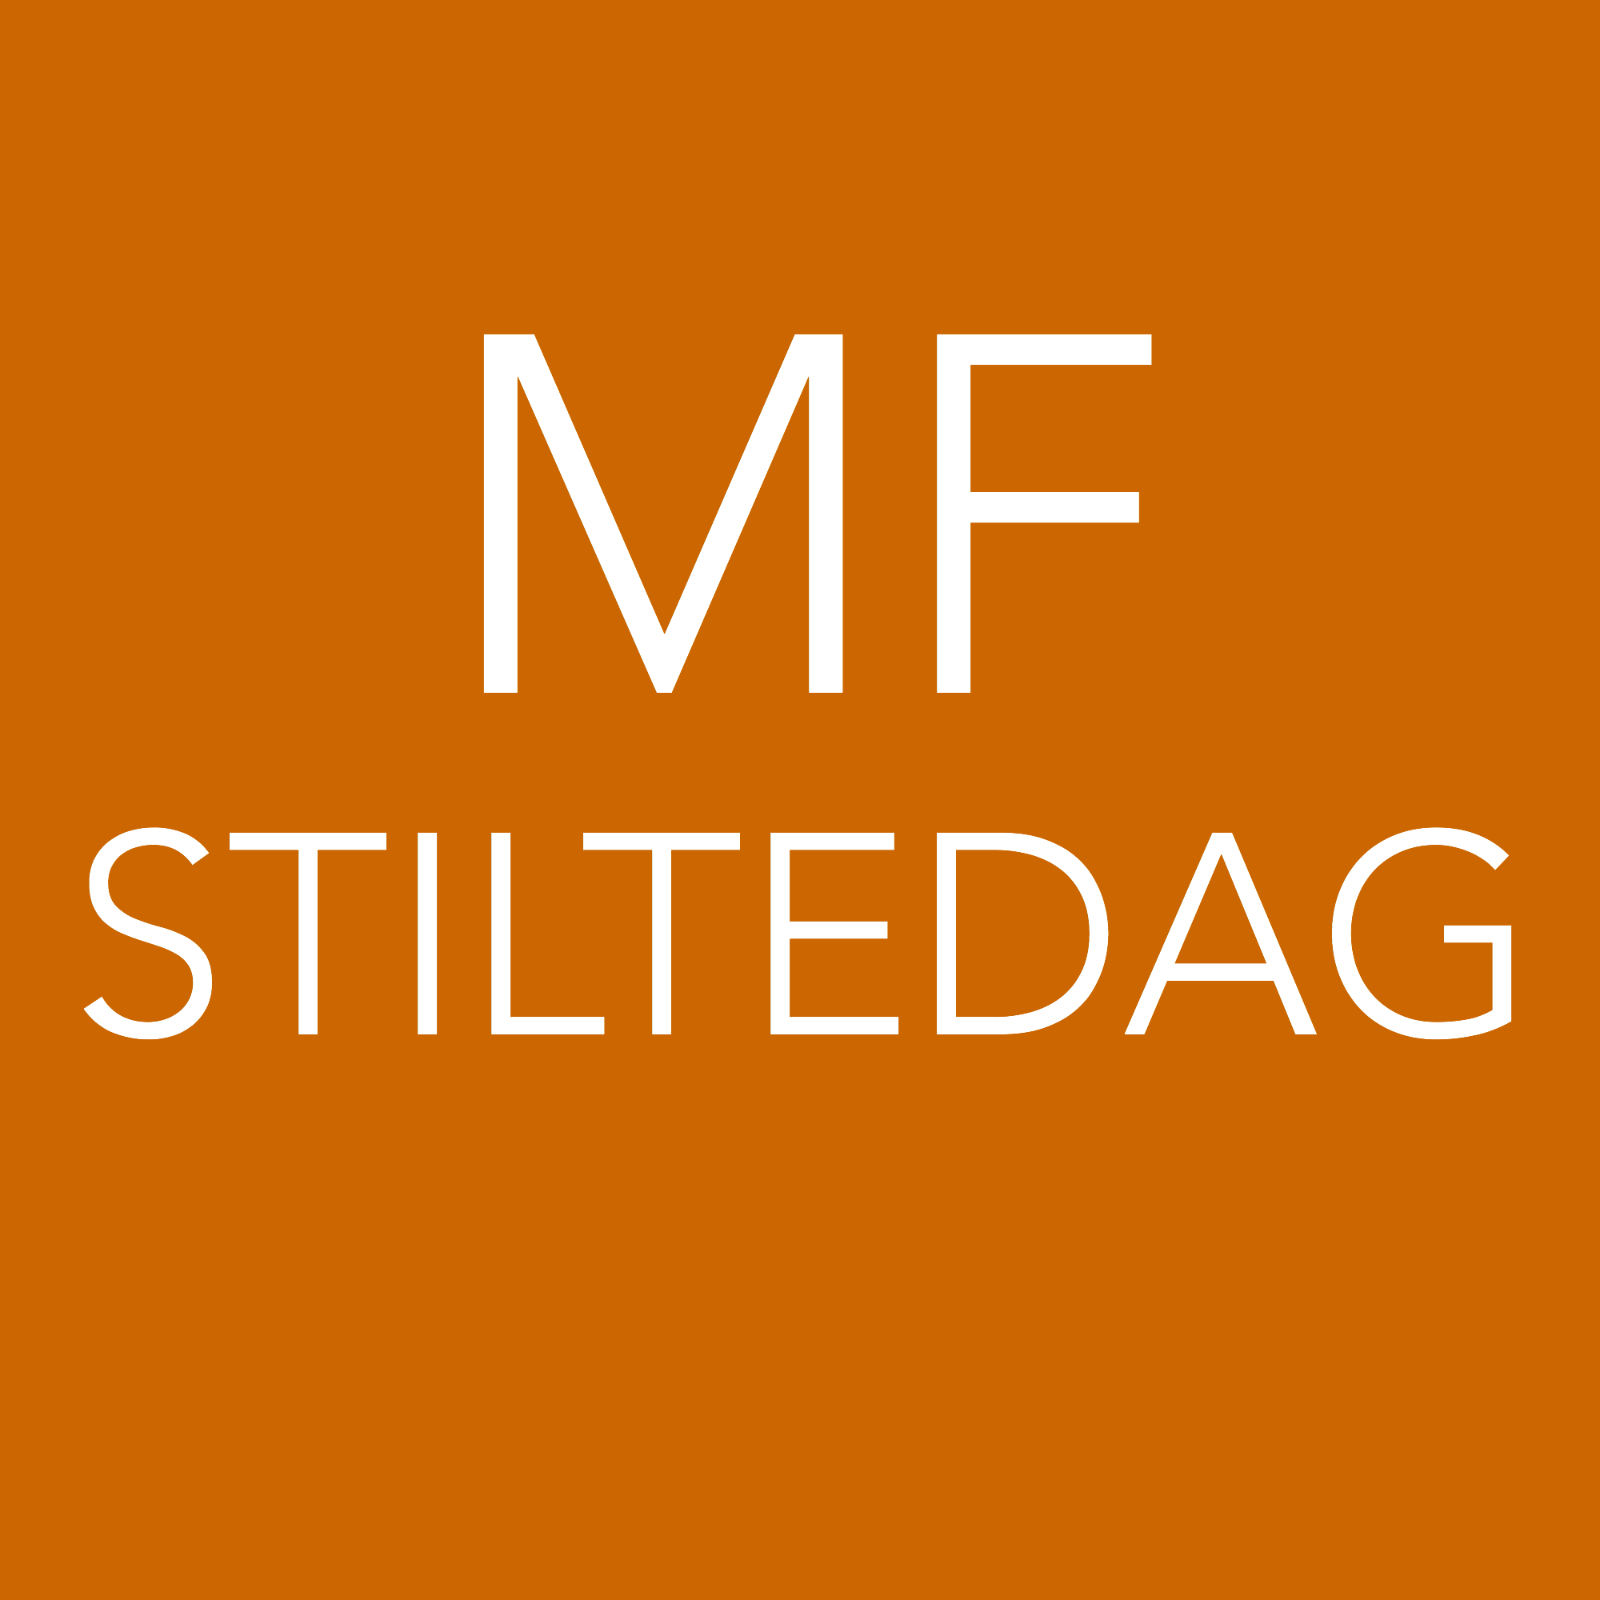 [MF-STD] Stiltedag 10 november 2018